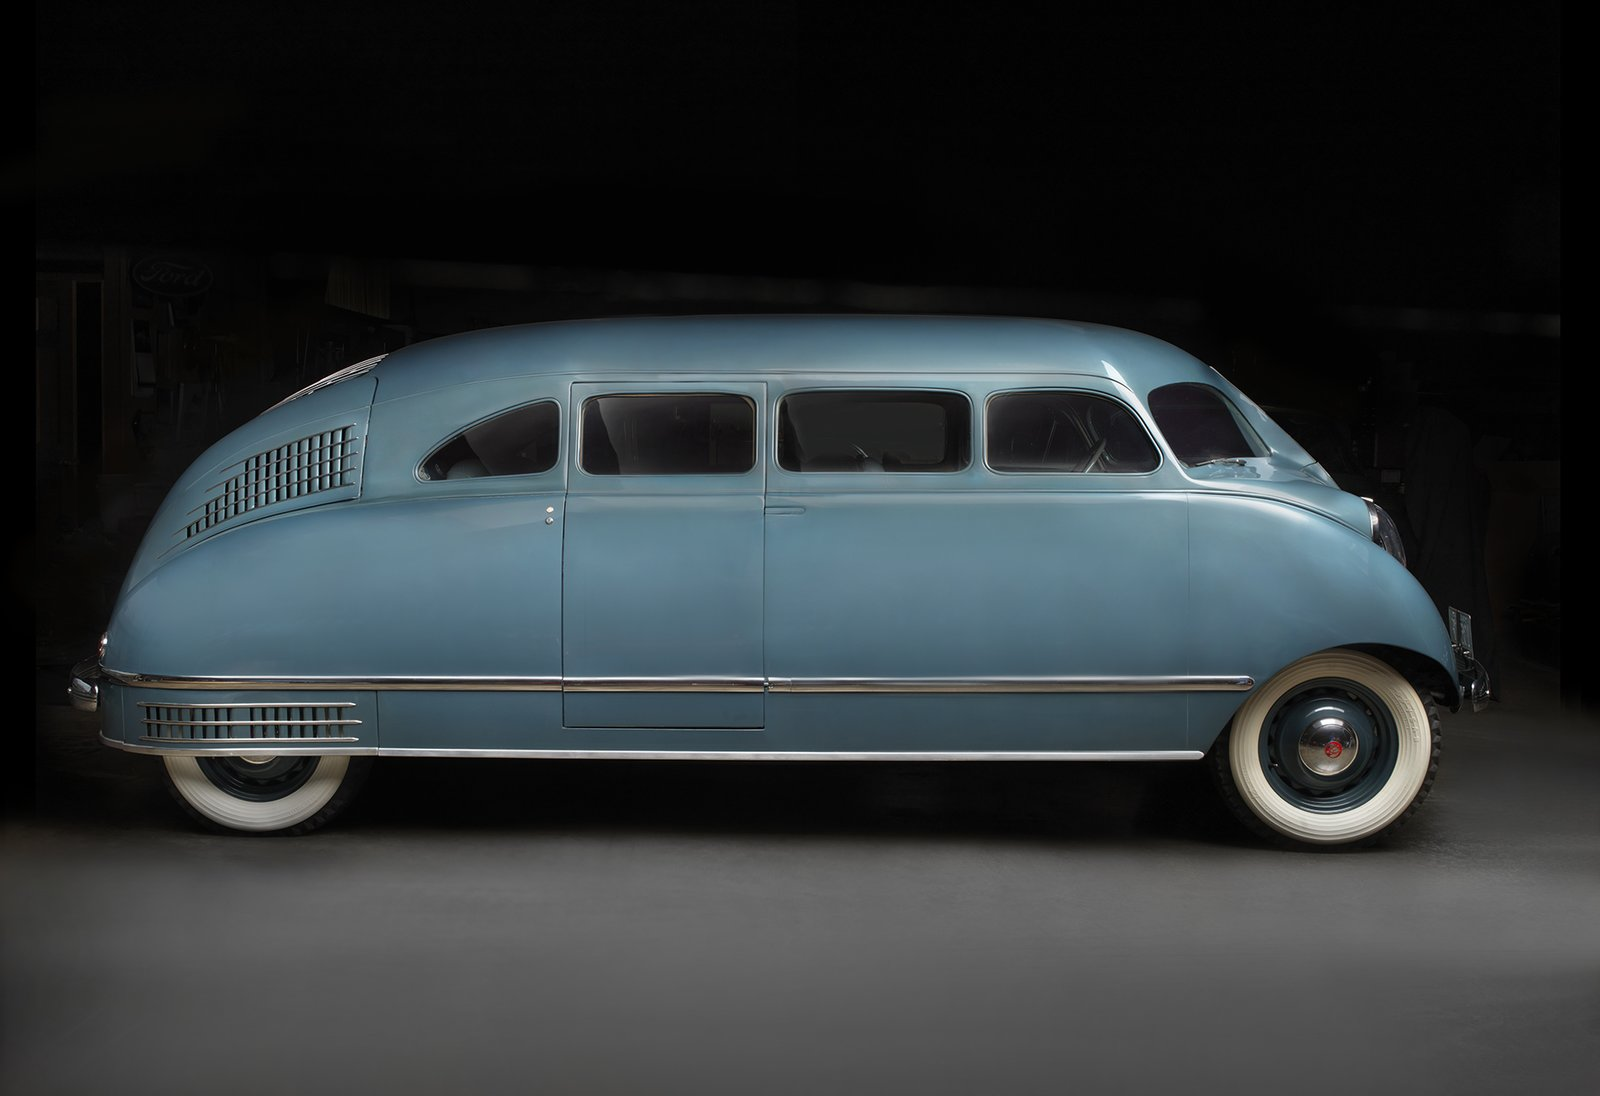 1936 Stout Scarab, Collection of Ron Schneider  Photo 5 of 15 in Examining the Architecture of the Art Deco Automobile